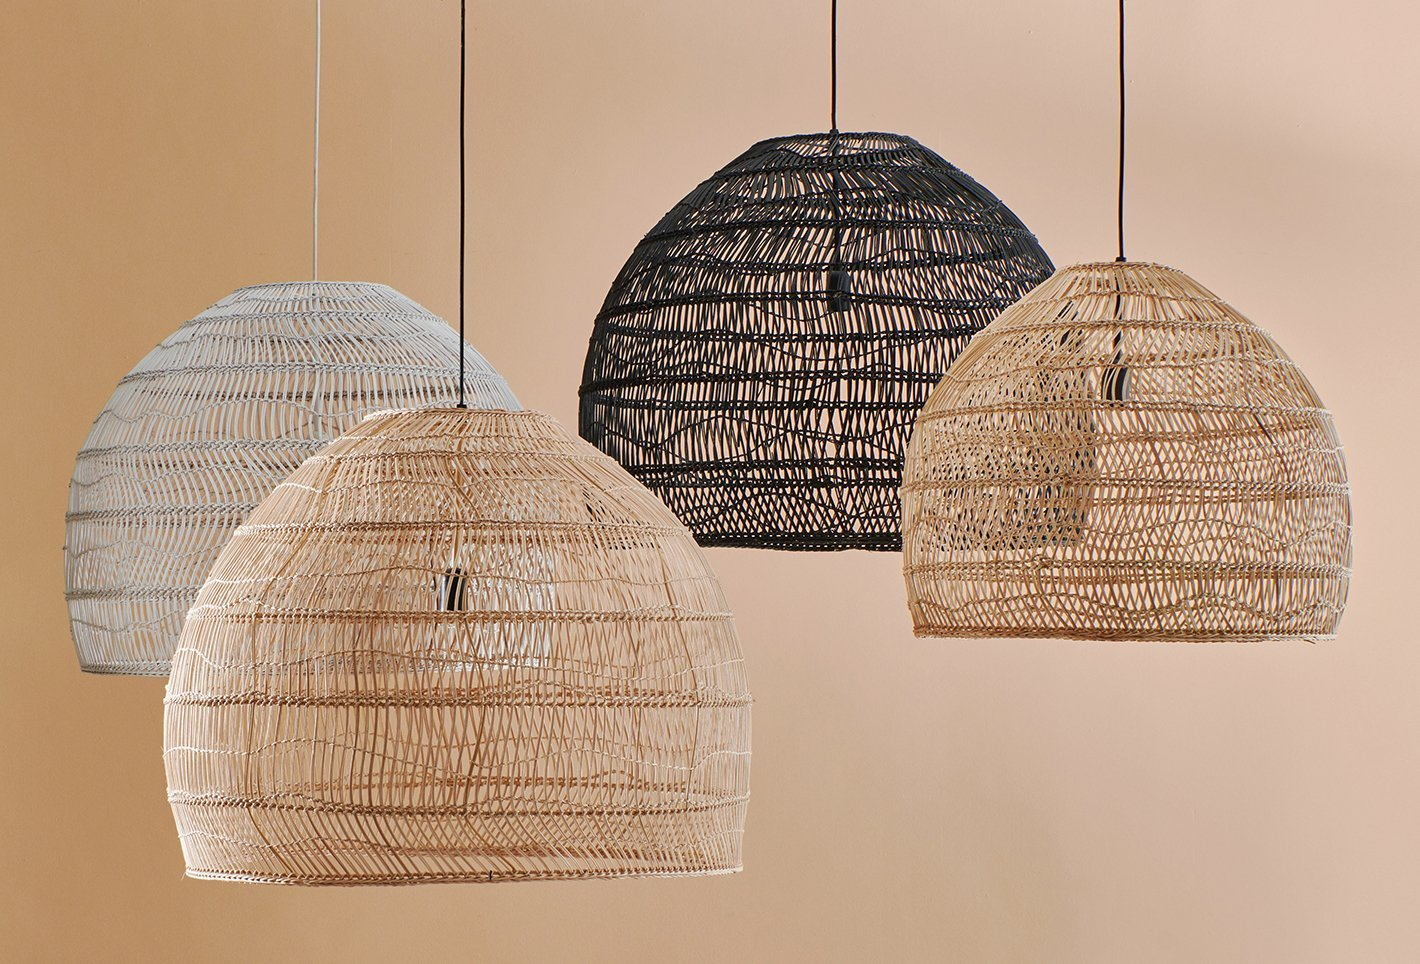 Lamp Wicker M must